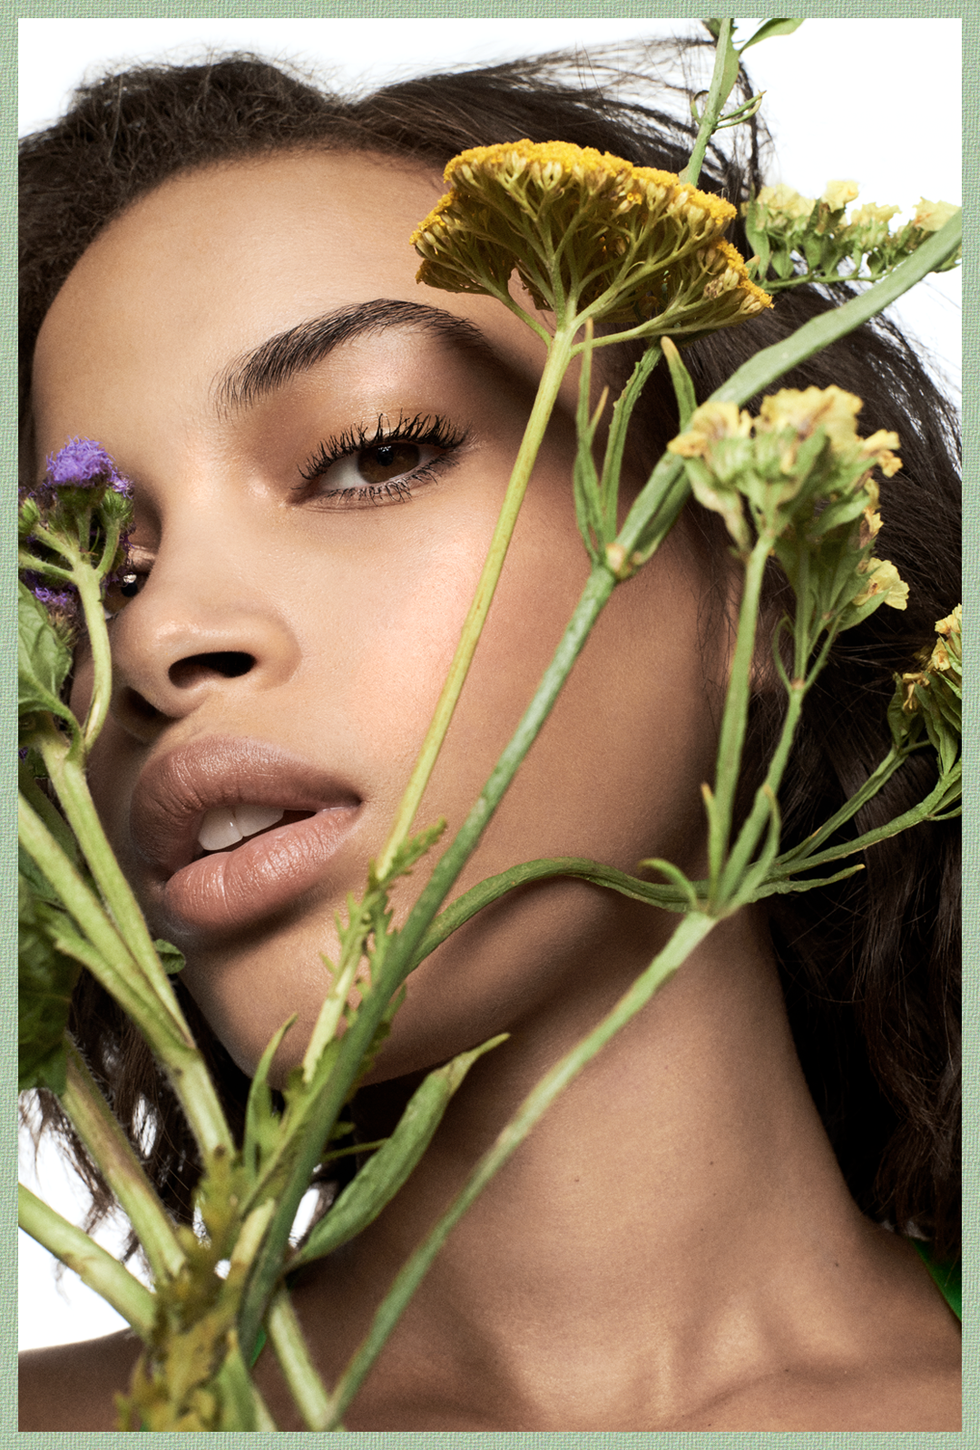 Why You Need Natural and Clean Makeup